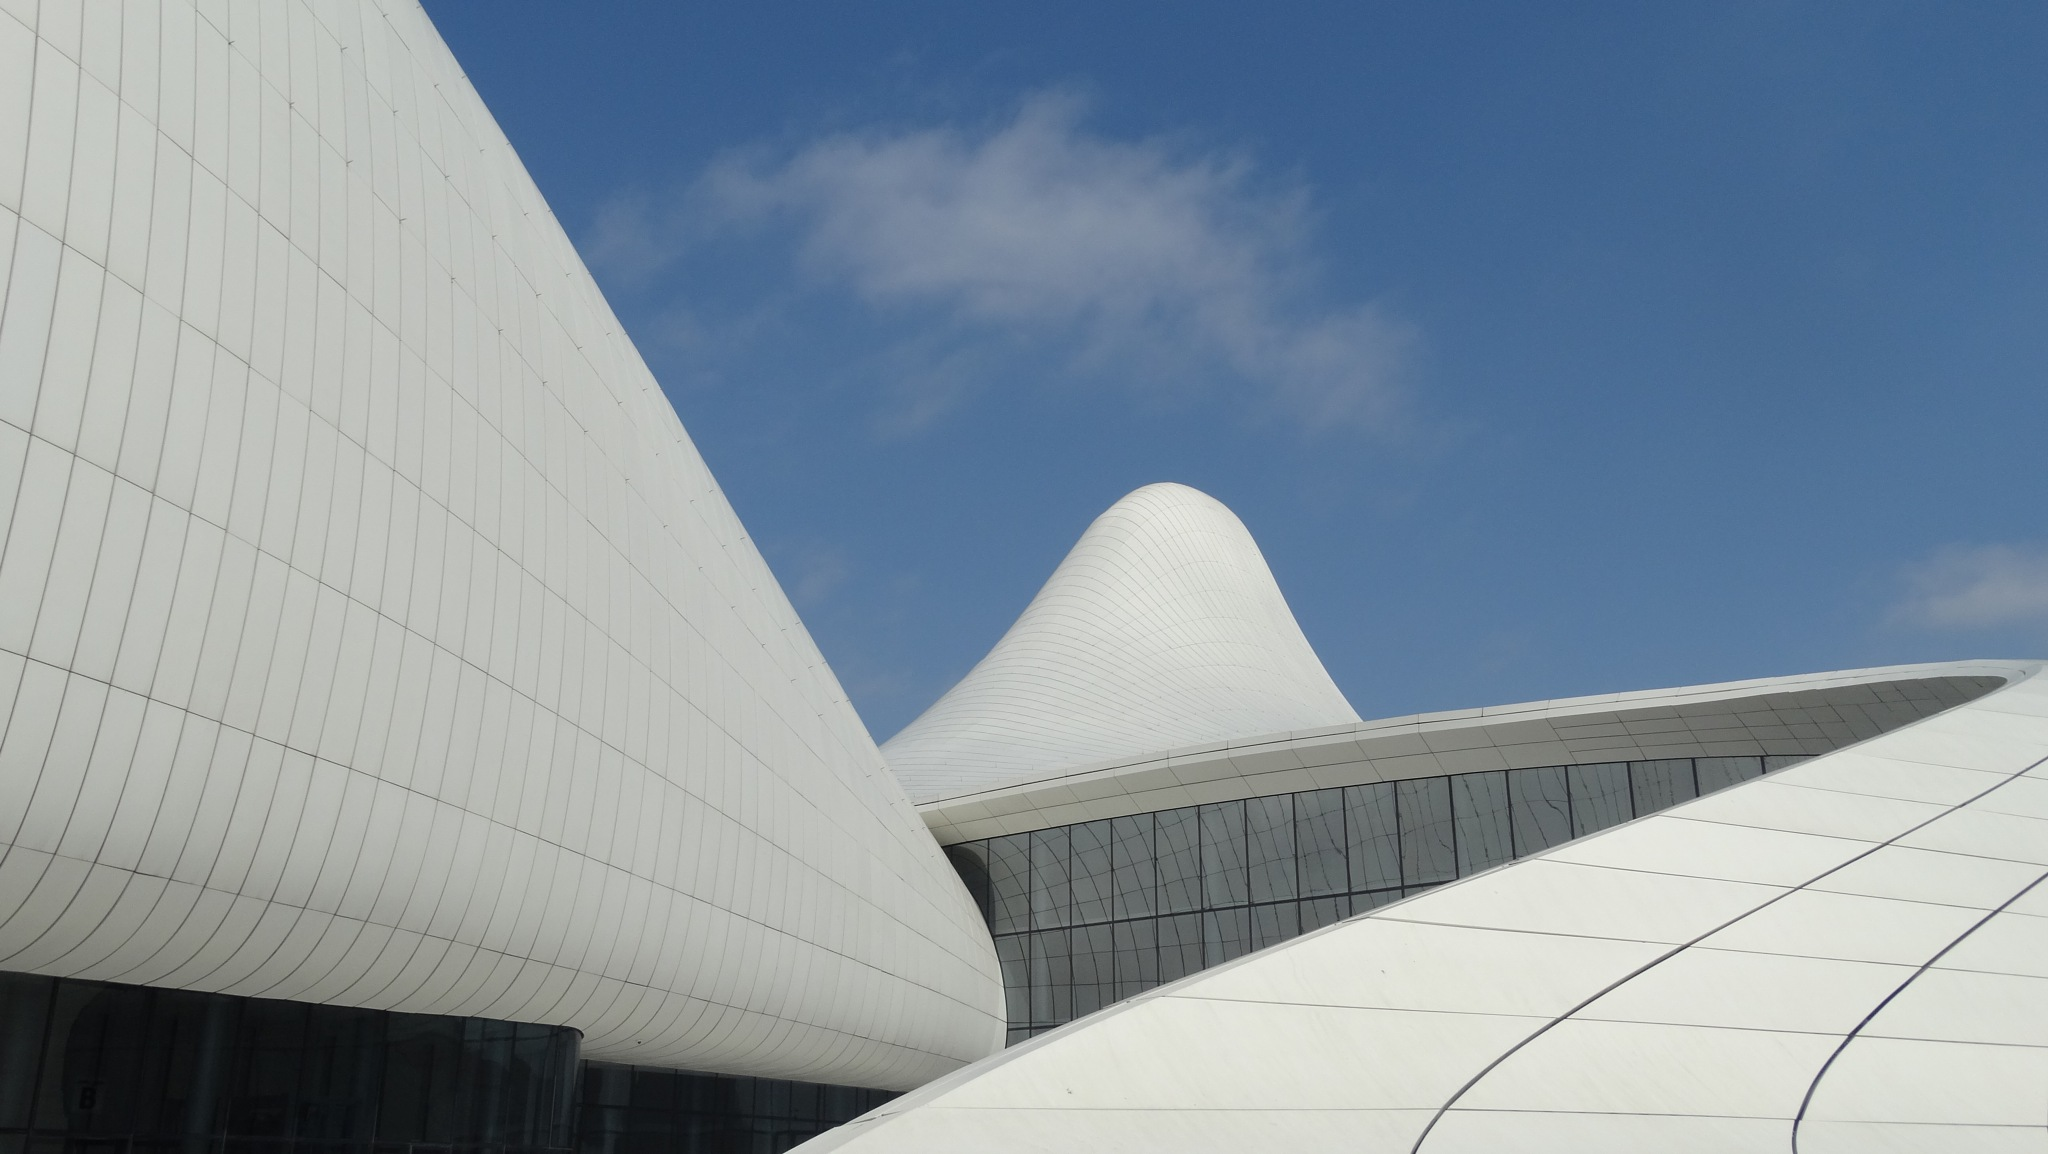 Curves and architecture! by Elena DK